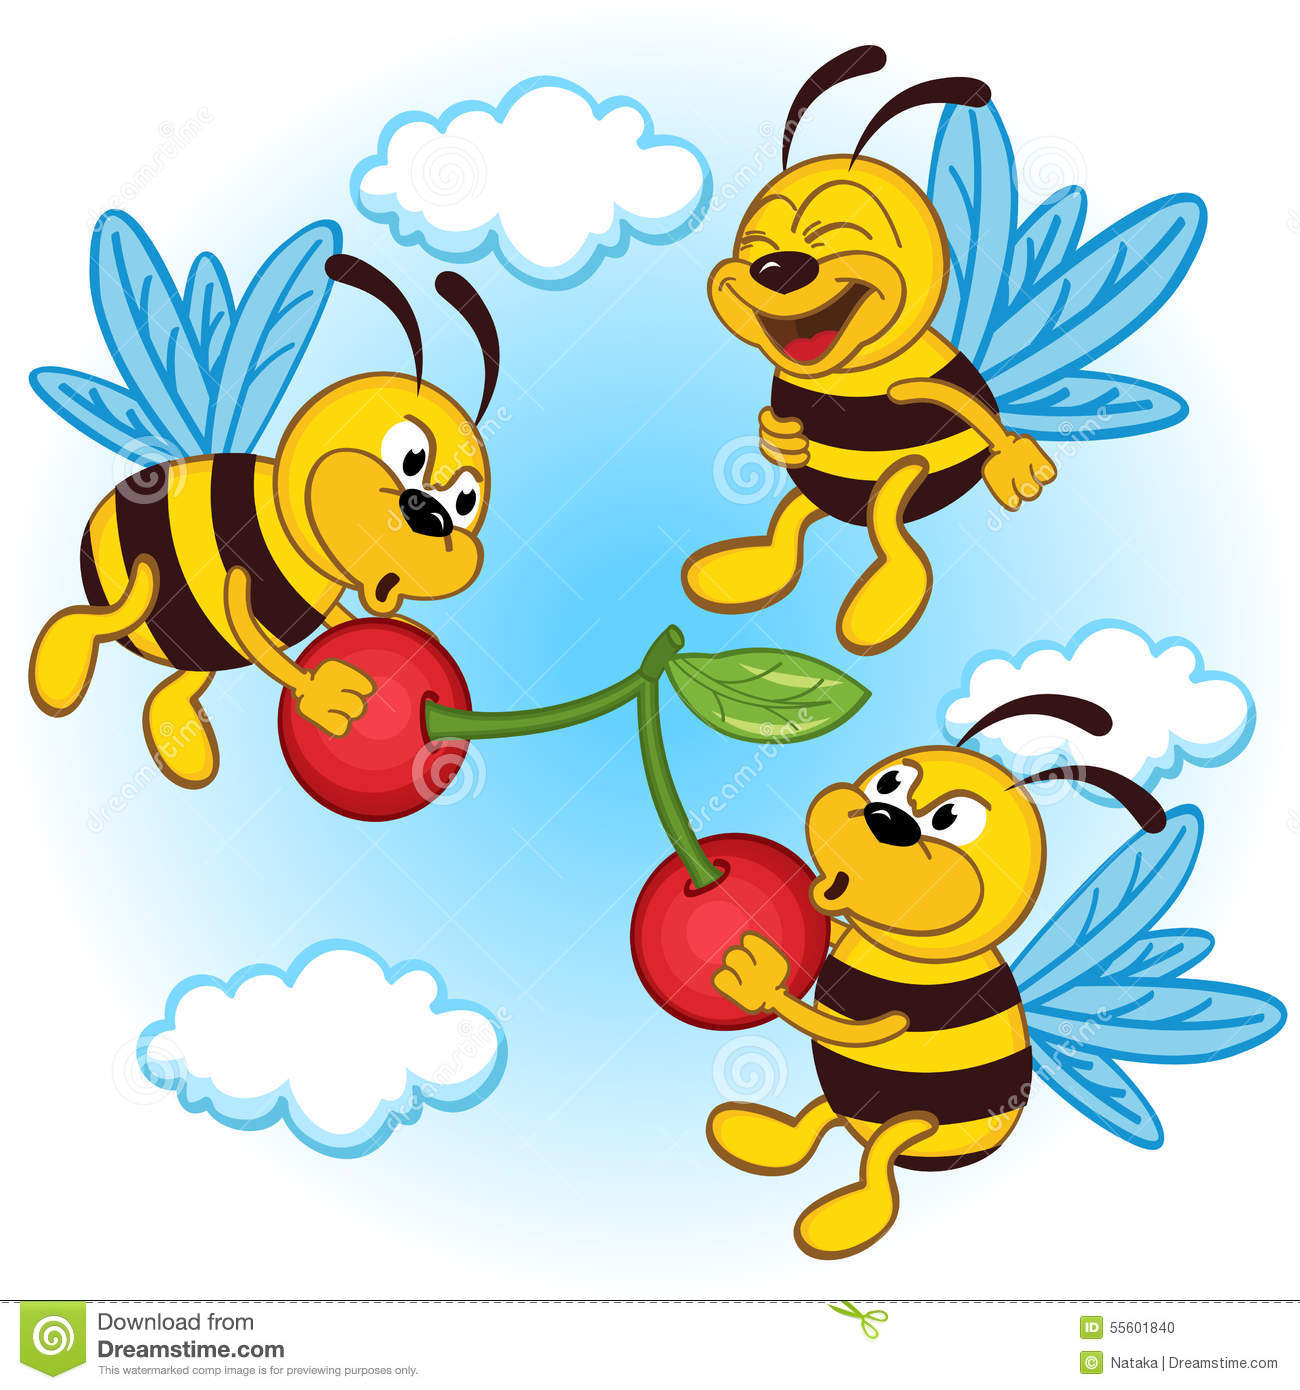 Bee and cherry